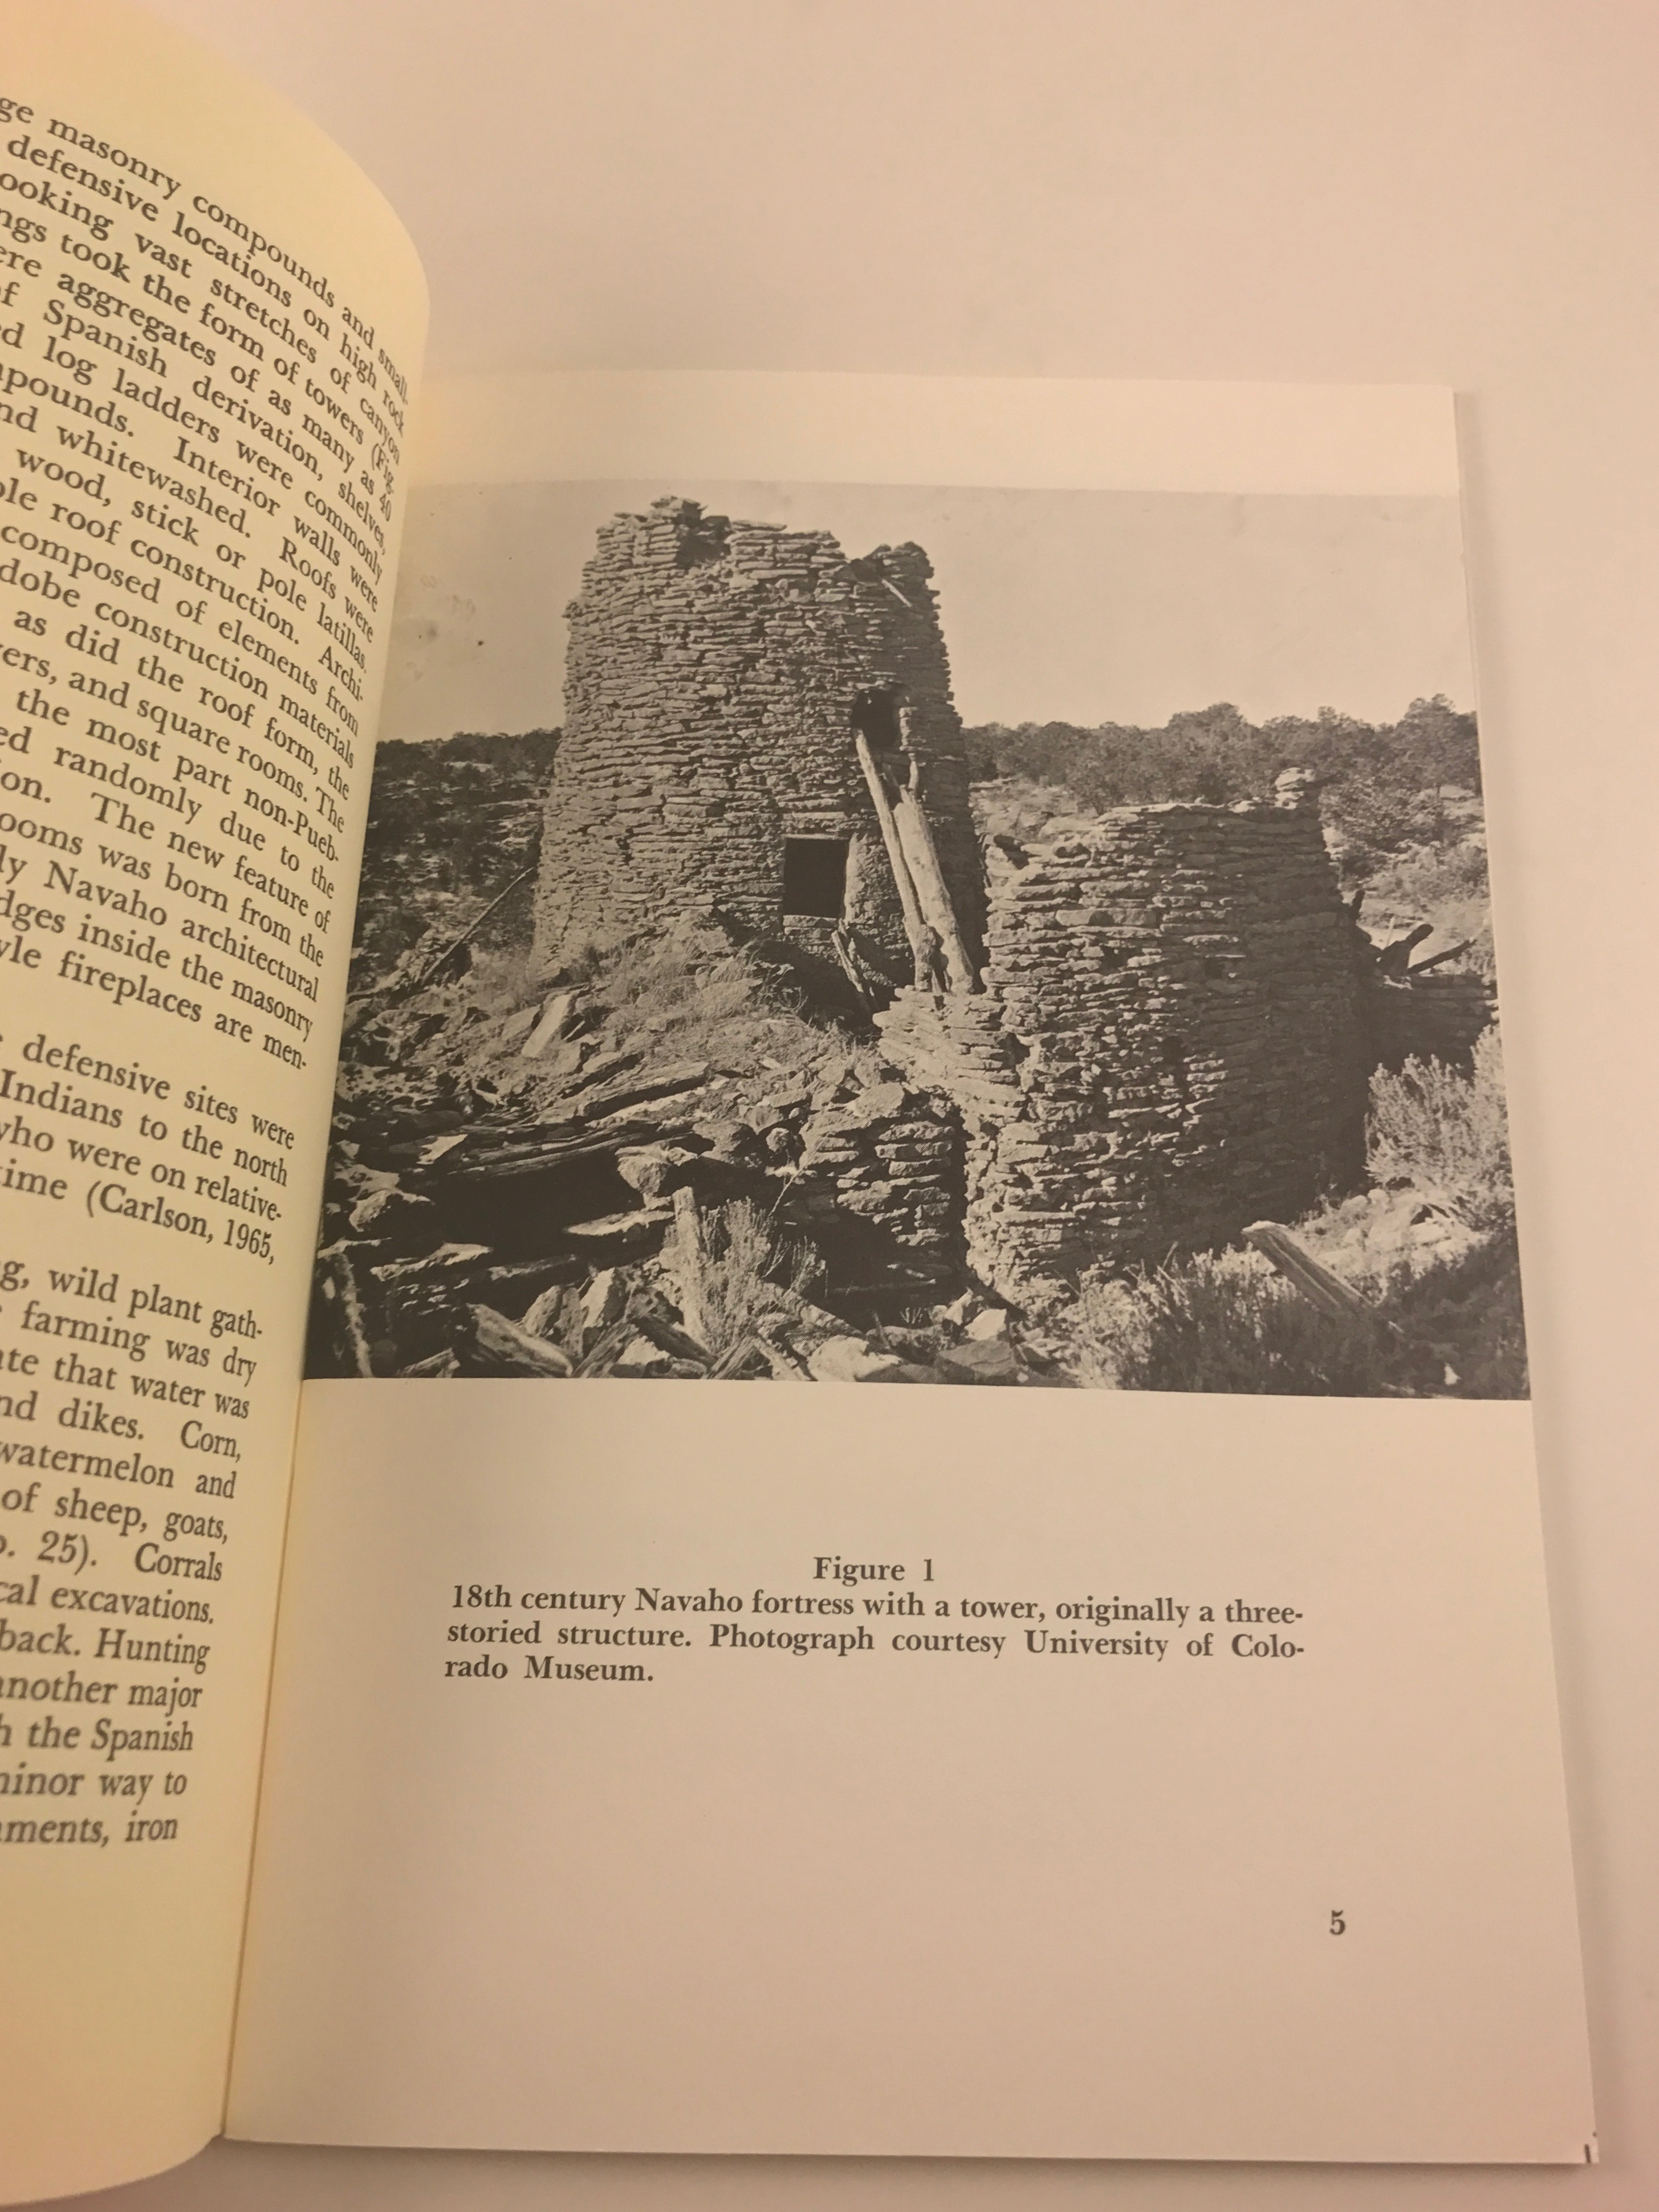 Early navaho rock paintings and carvings by polly schaafsma 1966